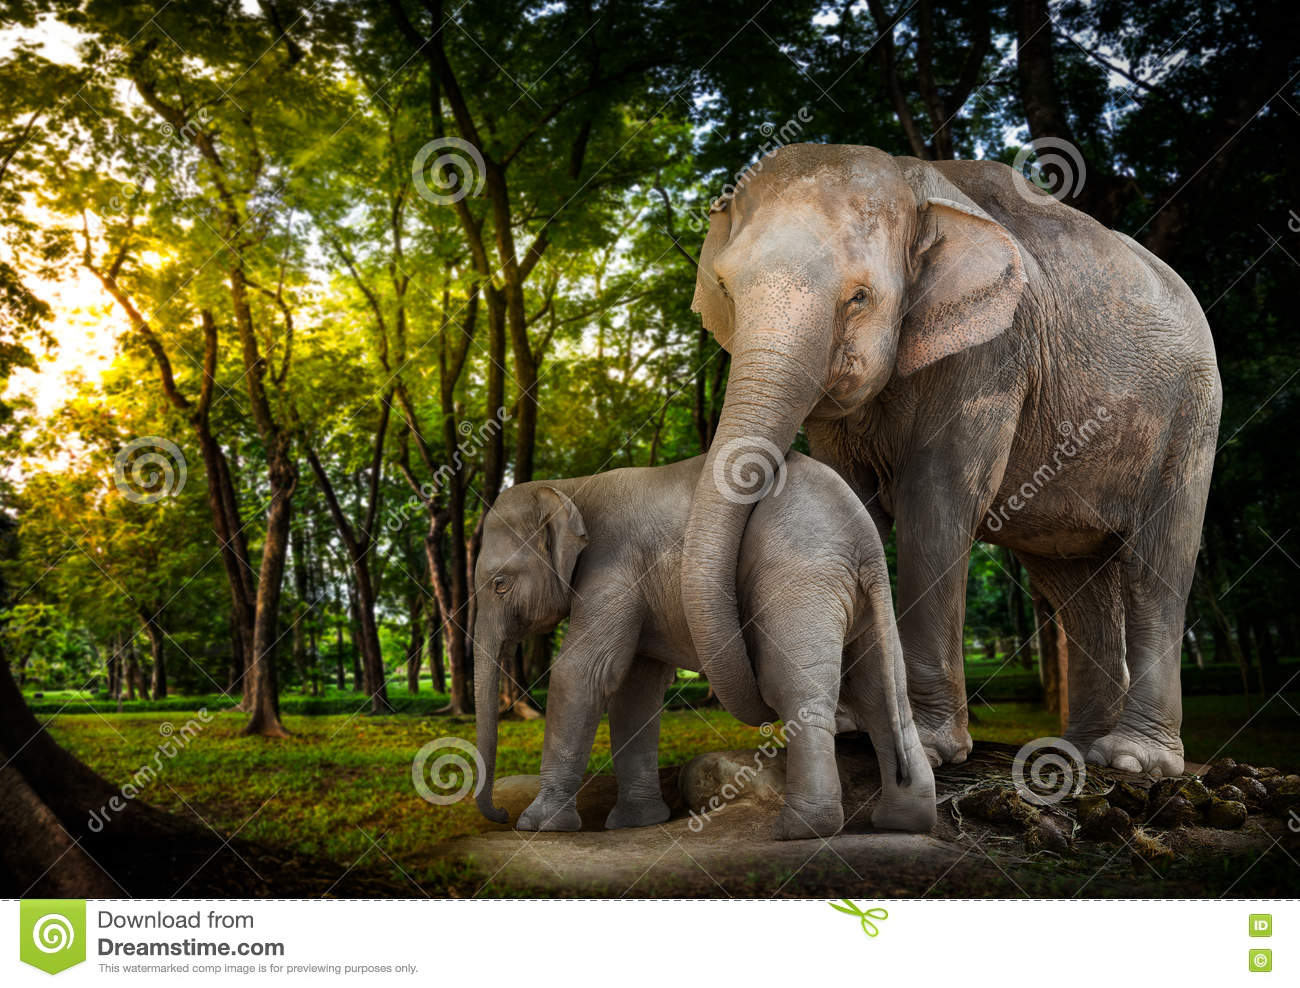 Elephant family in forest